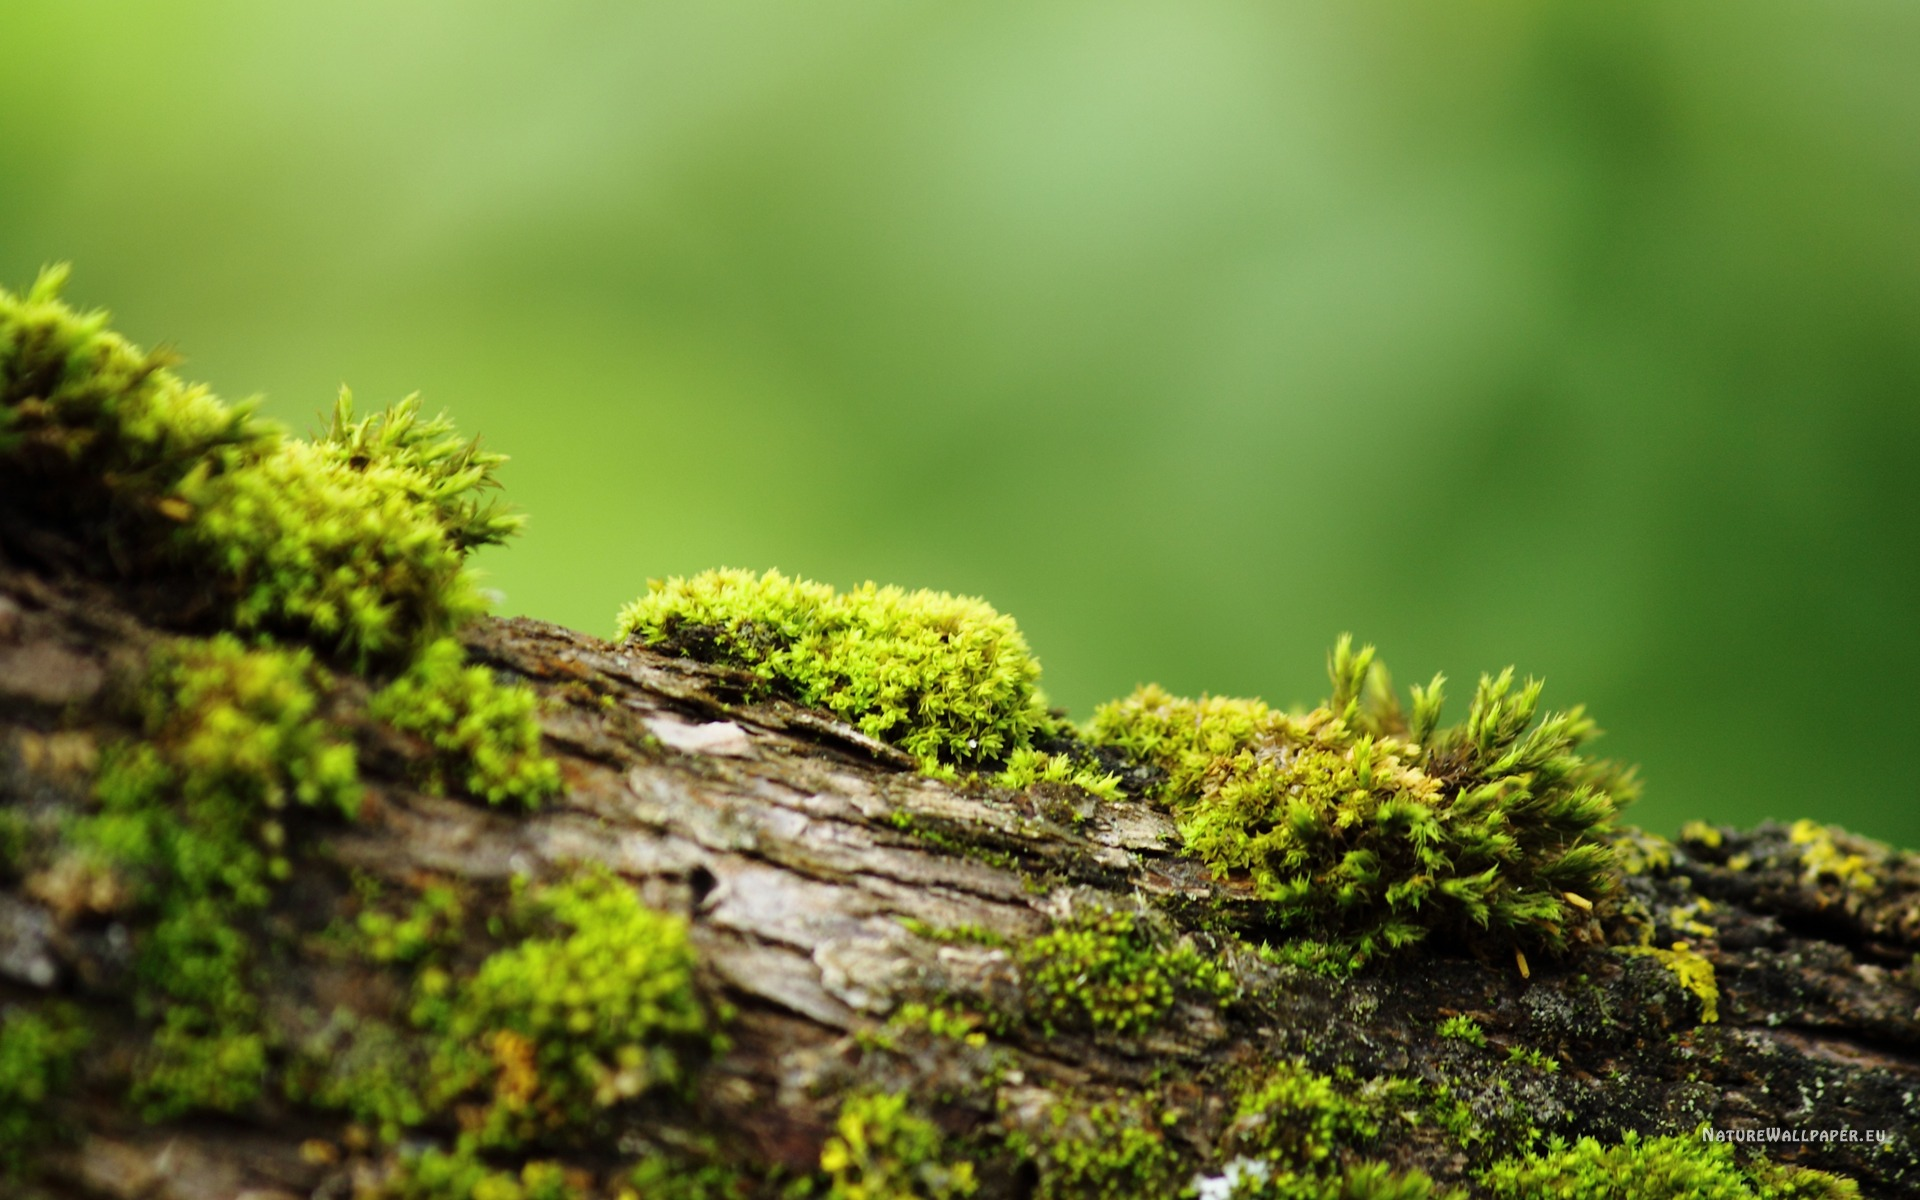 Bark With Moss